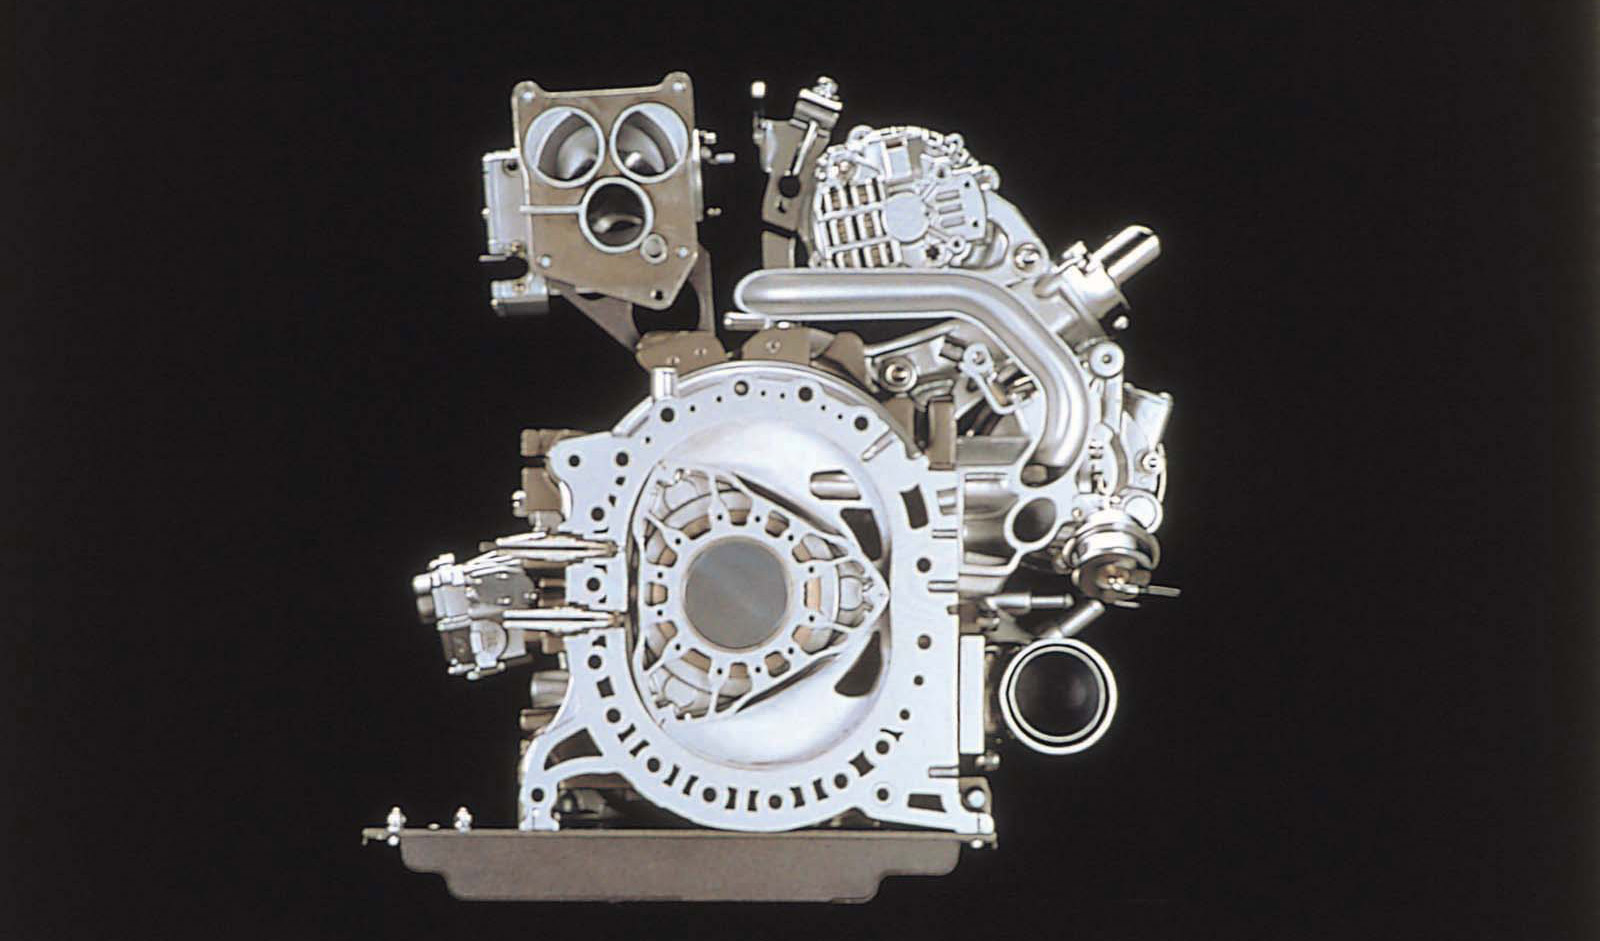 mazda 39 s rotary engine could live on in electric cars. Black Bedroom Furniture Sets. Home Design Ideas